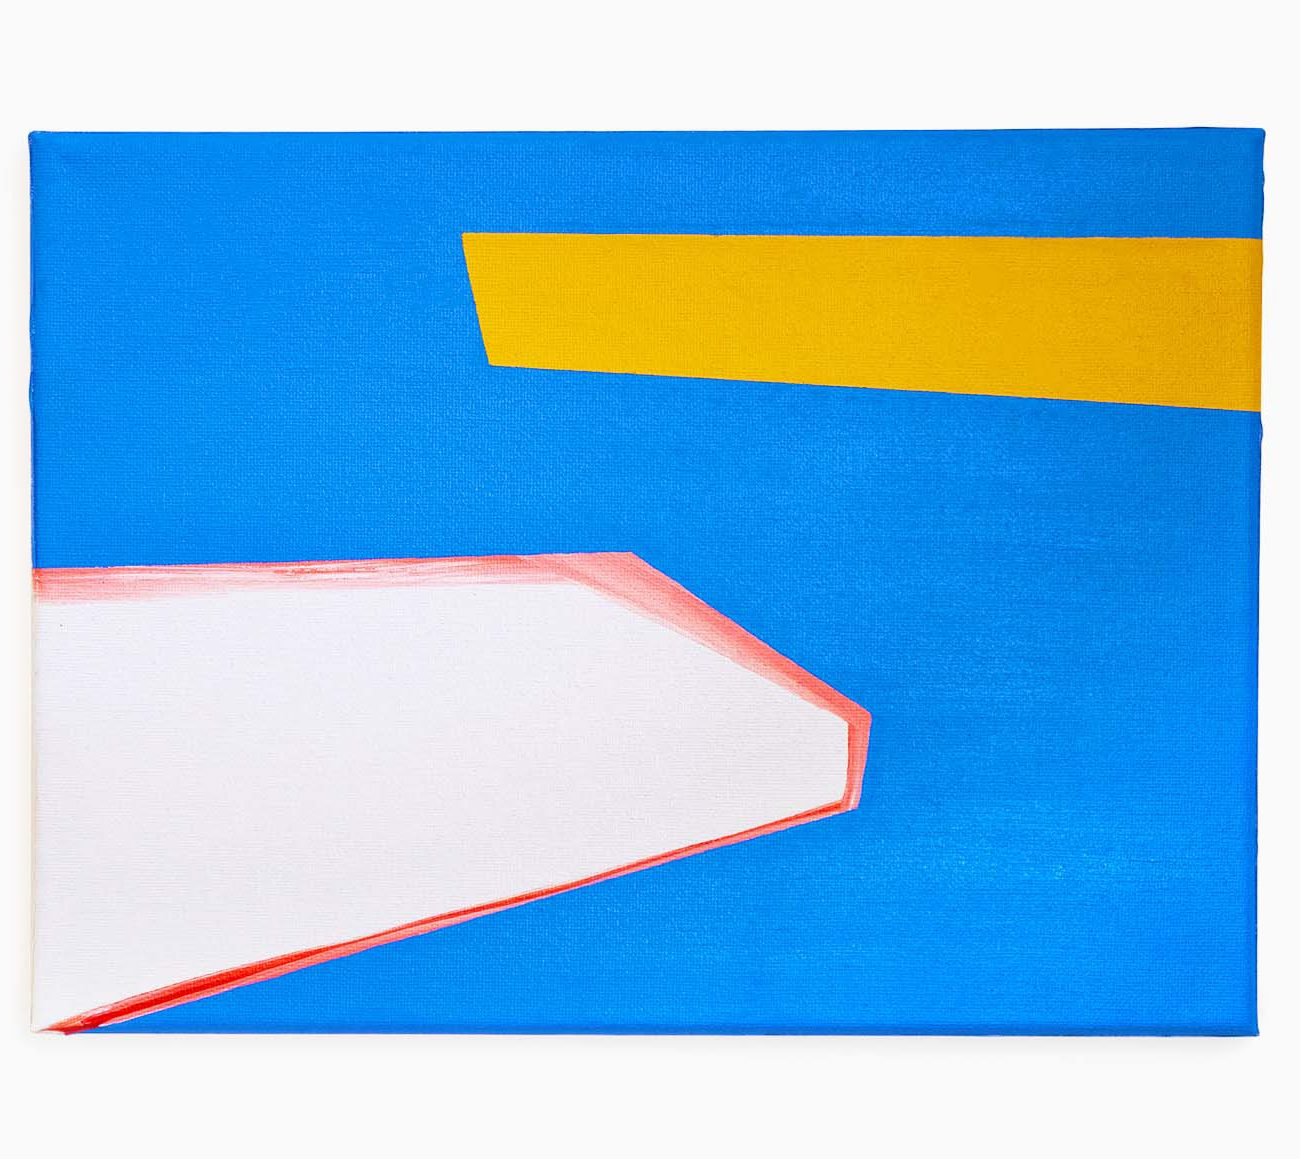 Boat 12 (W) x 9 (H) Inches Oil on Canvas by 권재나 Jaena Kwon